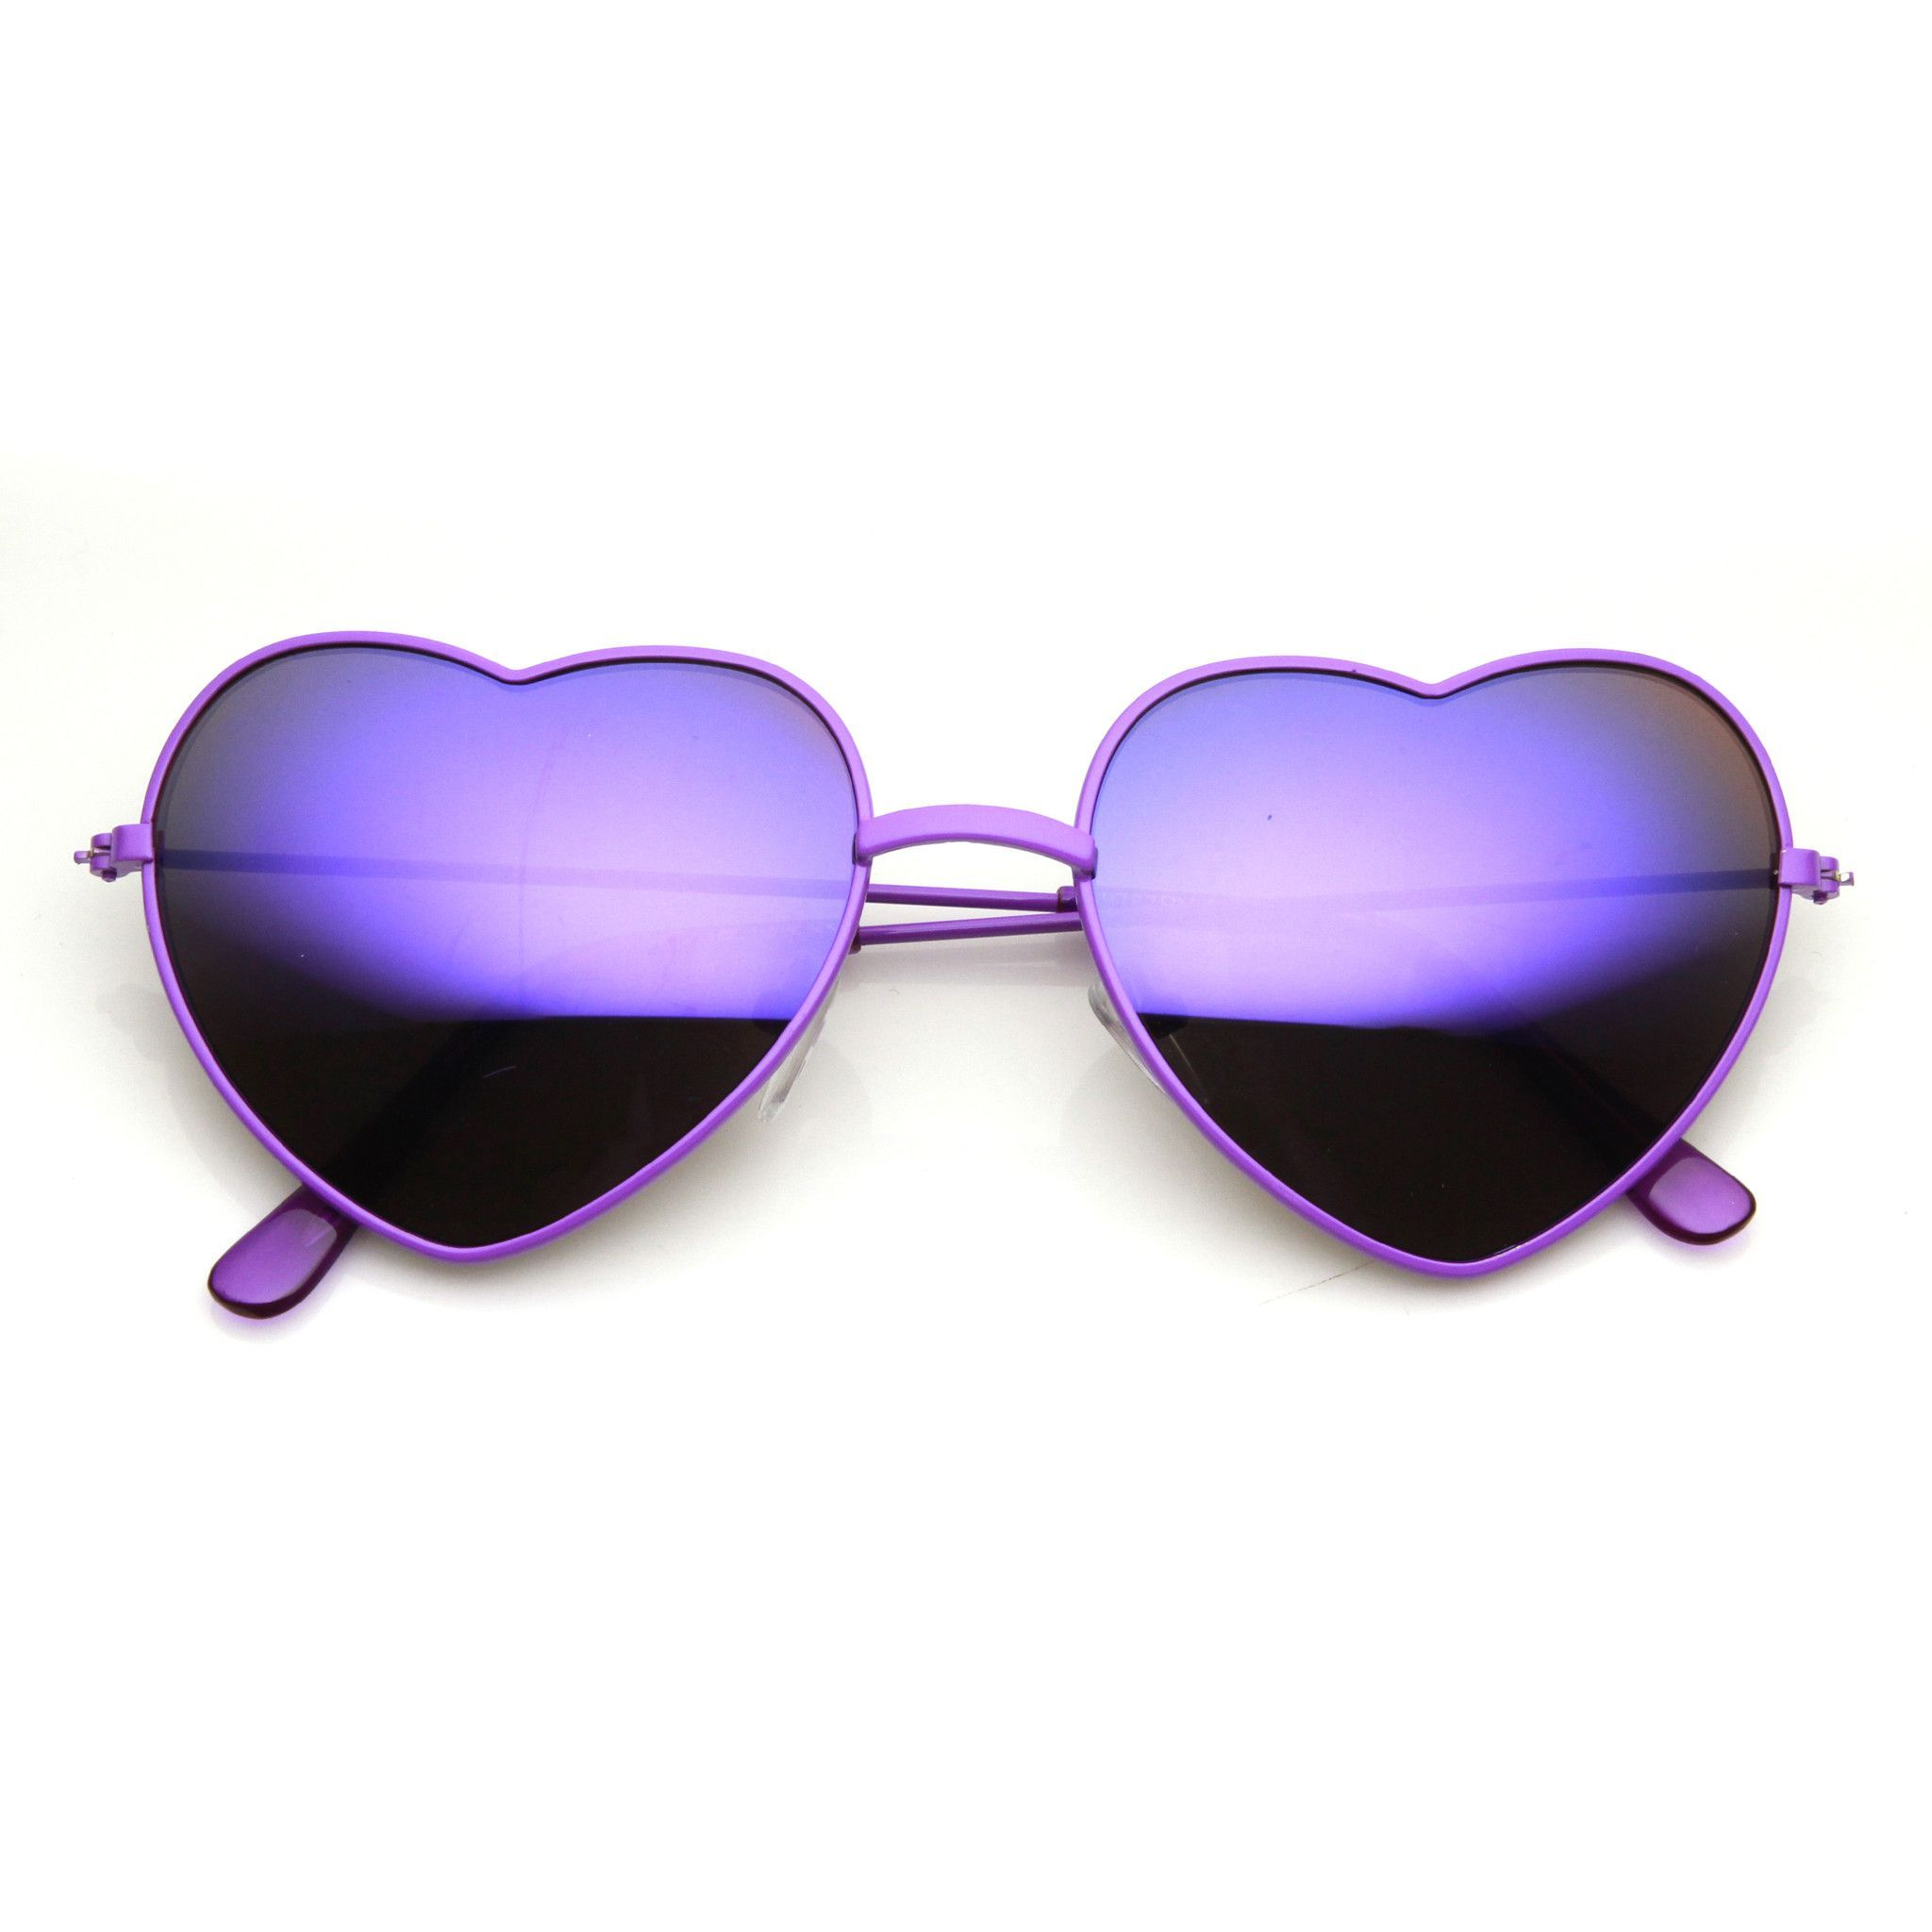 95a54831e42aa6 Women s Color Coated Heart Shaped Metal Frame Revo Mirror Lens Sunglasses  9563 Paarse Spiegel